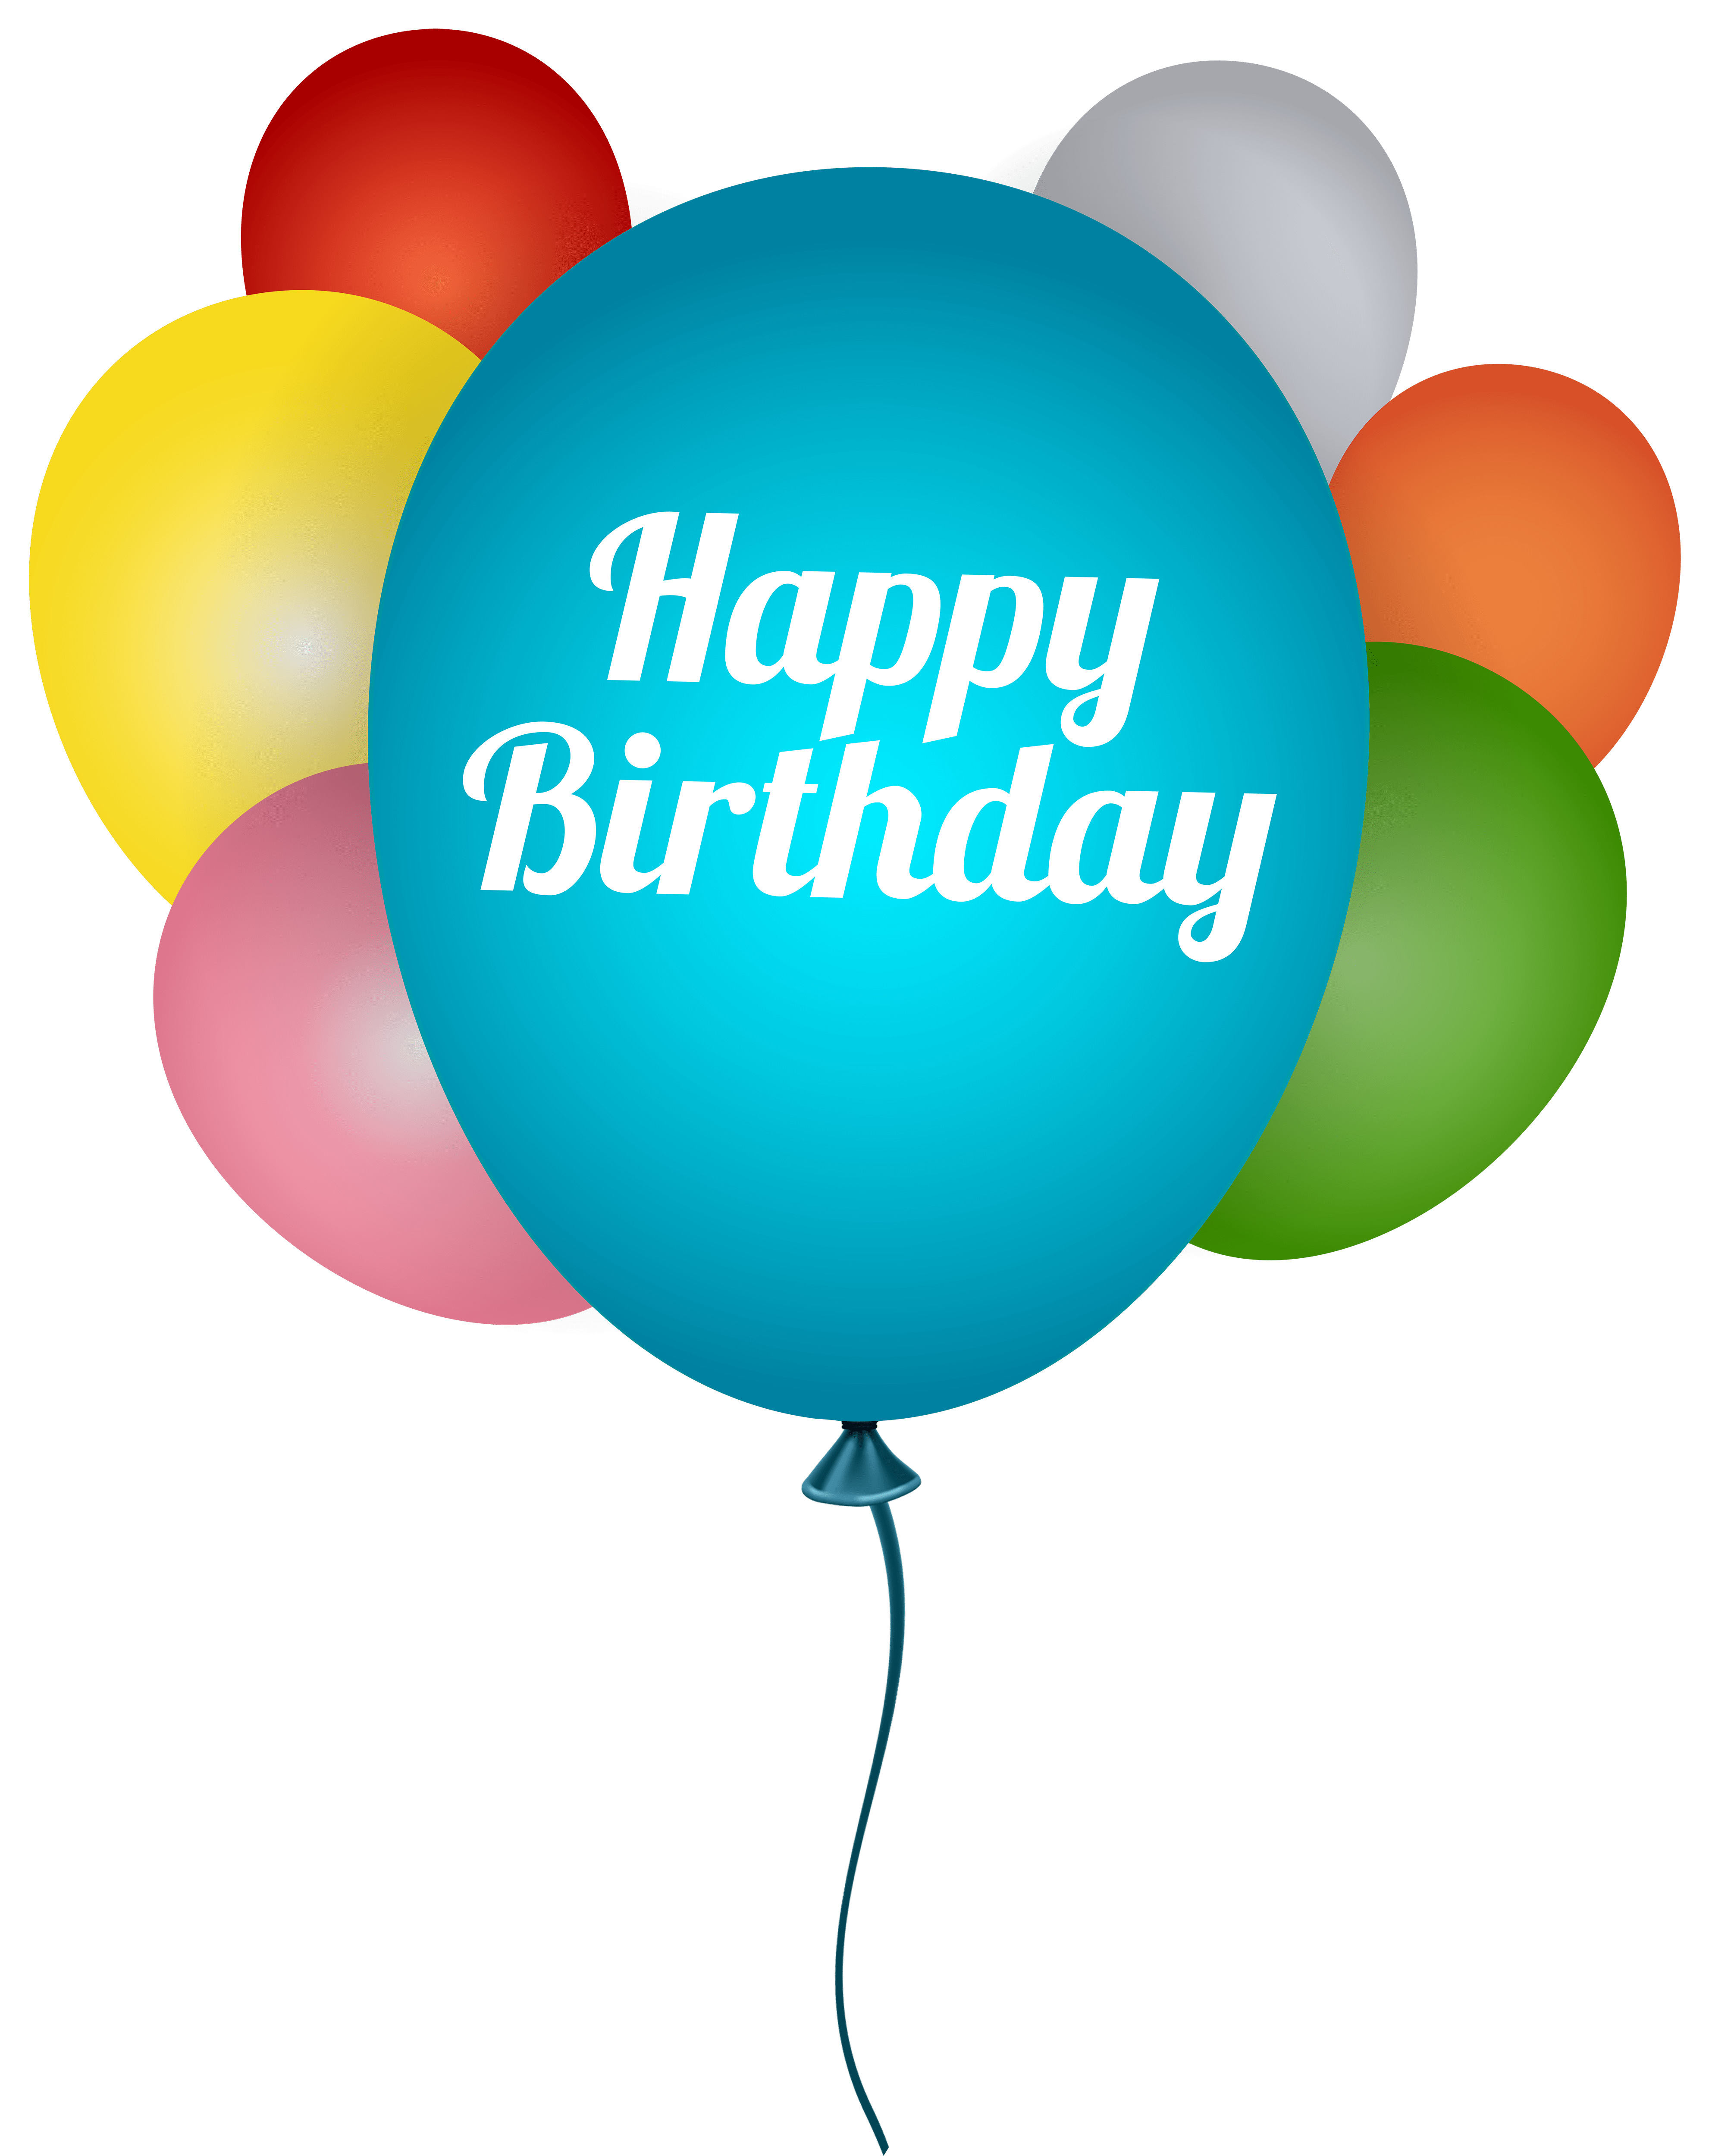 Happy Birthday Balloons Transparent Png Clip Art Image Gallery Yopriceville High Quality Images And Transparent Png Free Clipart